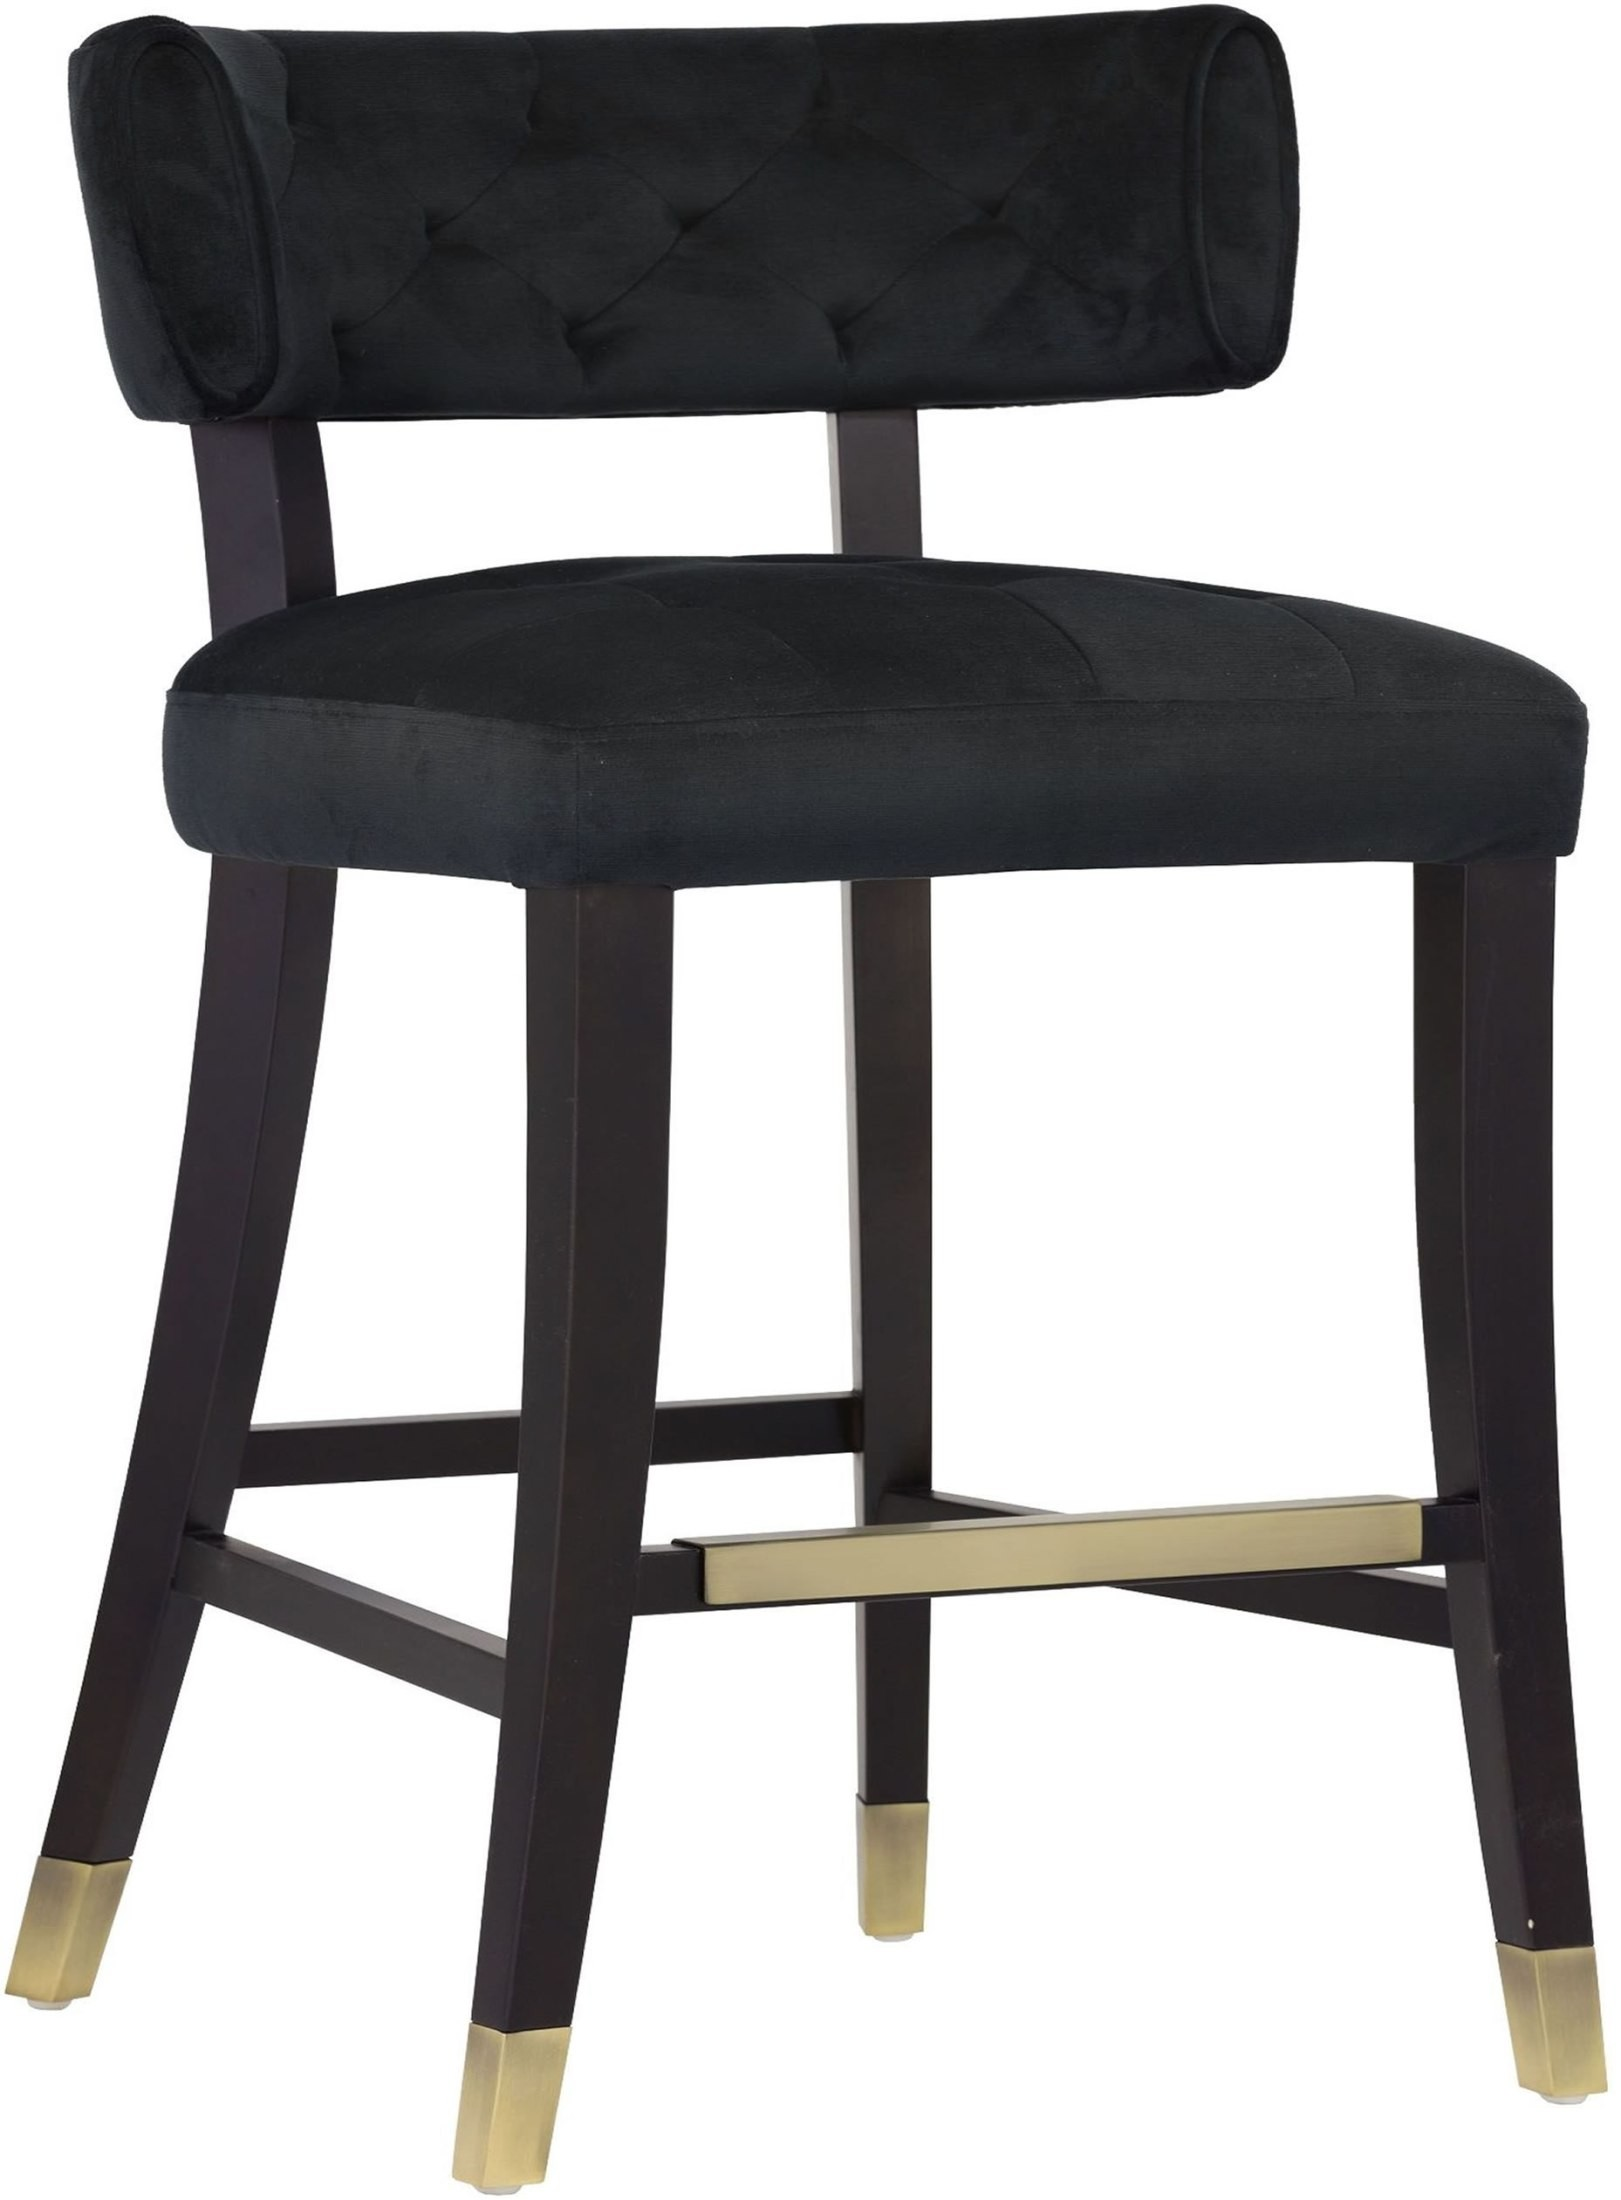 Tatum Piccolo Black Upholstered Counter Stool From Sunpan